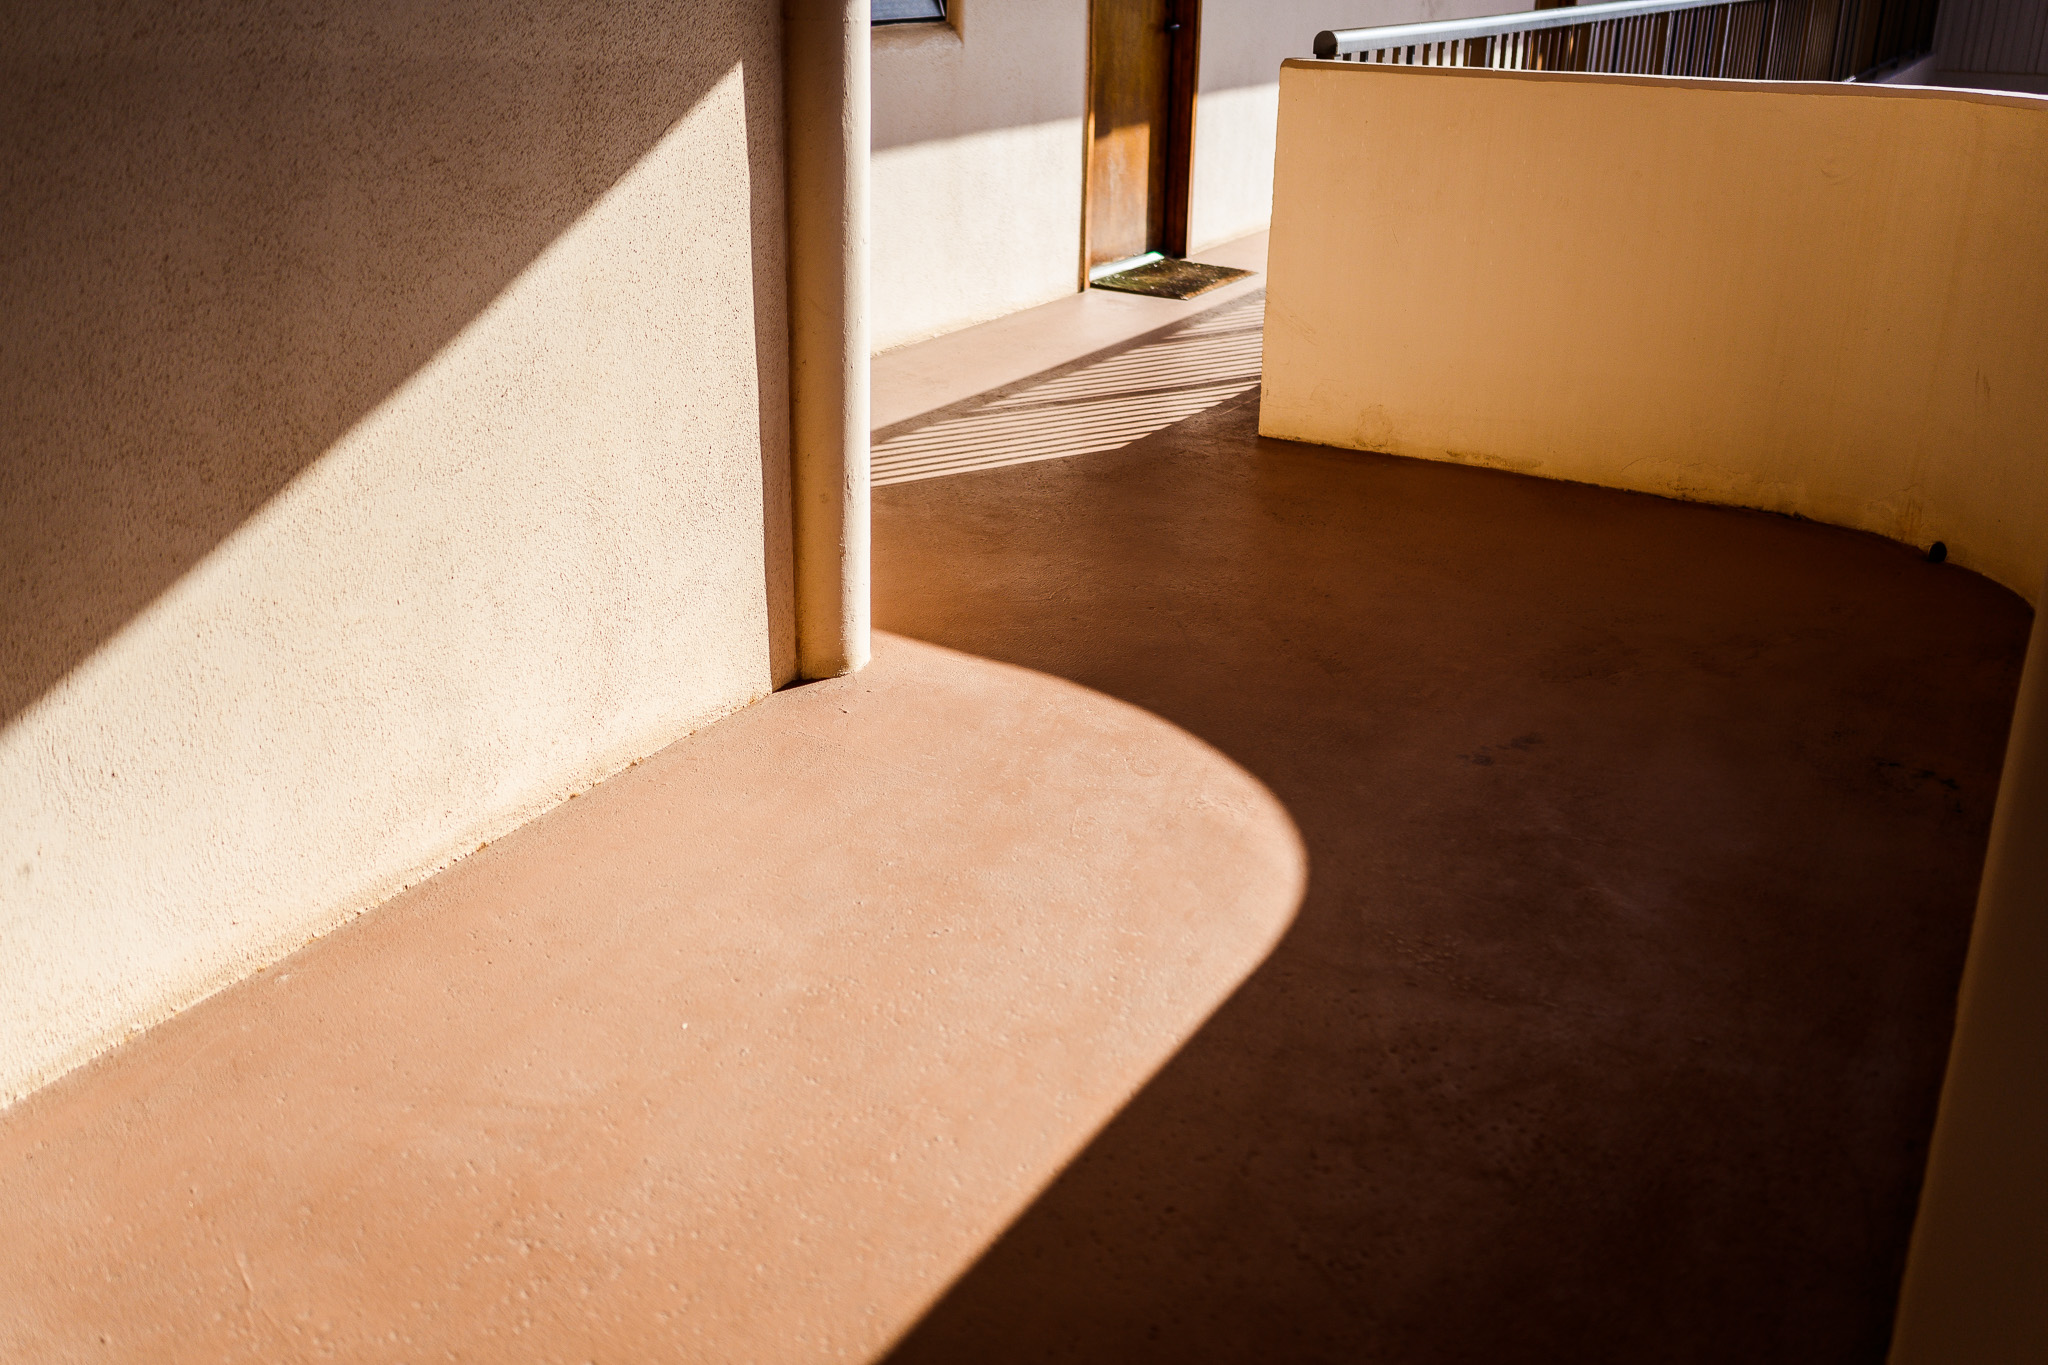 shapes shadows and lines in architecture photography minimal